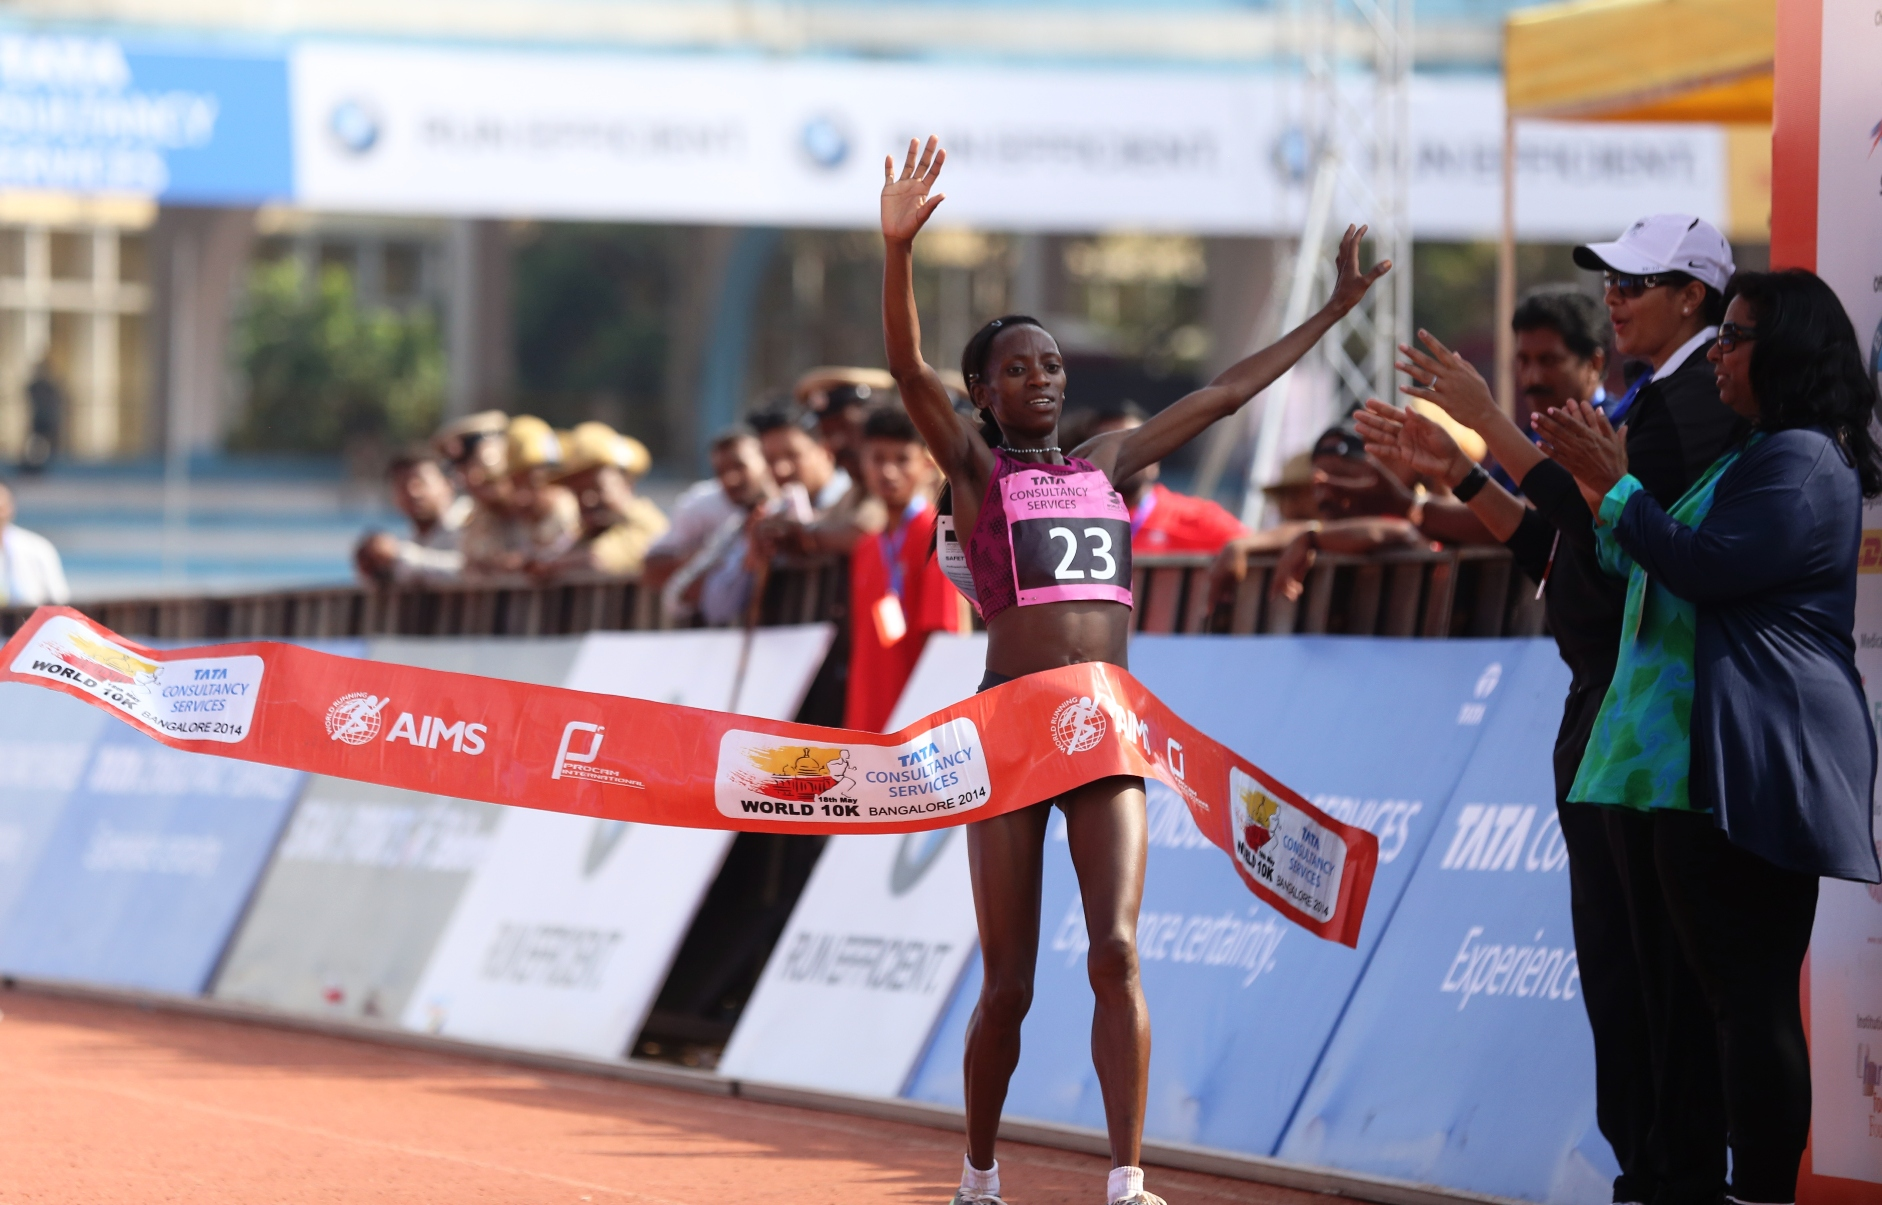 Kenya's Lucy Kabuu crosses the finish line in 00:31:48 seconds with New Course record to win the overall women's title at the TCS World 10K Bangalore 2014. In the picture also seen are Anju Bobby George (Olympian) and Dr. N. Nagambika Devi, IAS, Principal Secretary to the Government, Youth Empowerment and Sports Department.